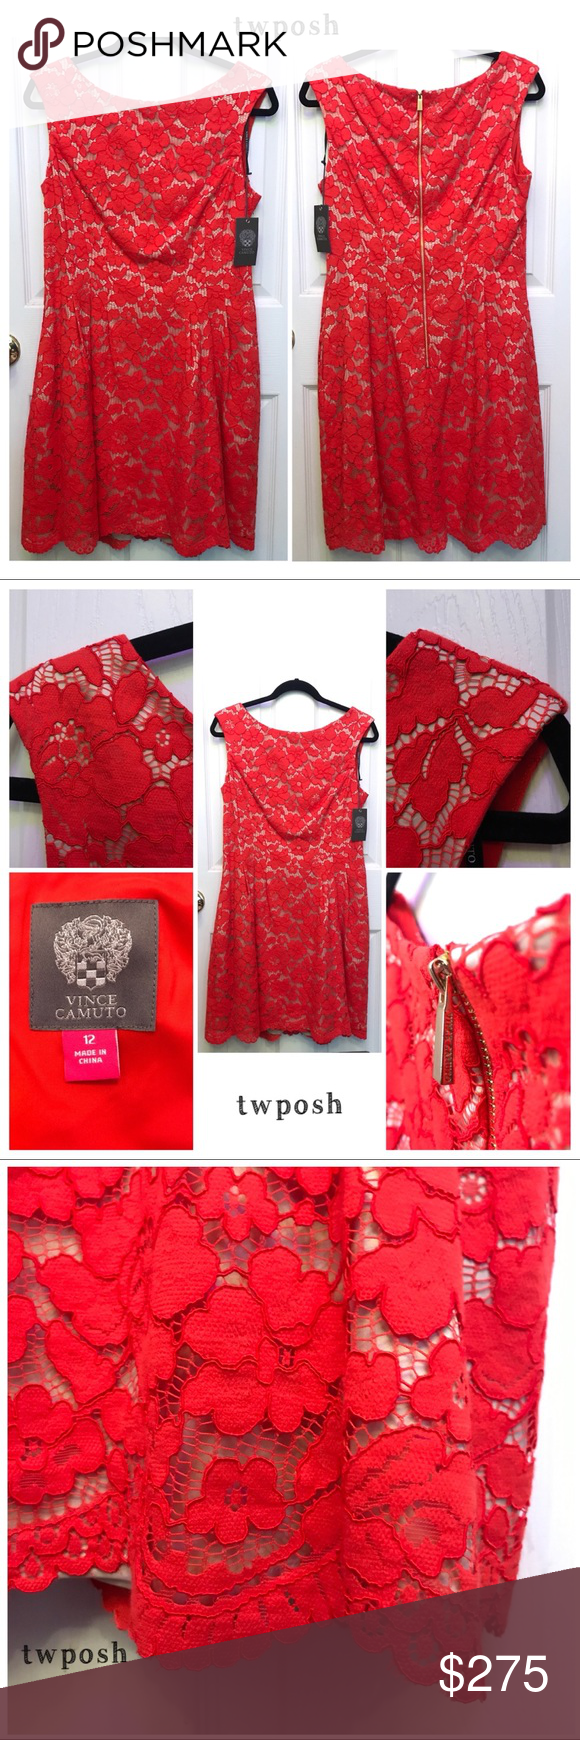 Vince Camuto Red Lace A Line Dress Nwt Lace A Line Dress A Line Dress Lace Aline Dress [ 1740 x 580 Pixel ]